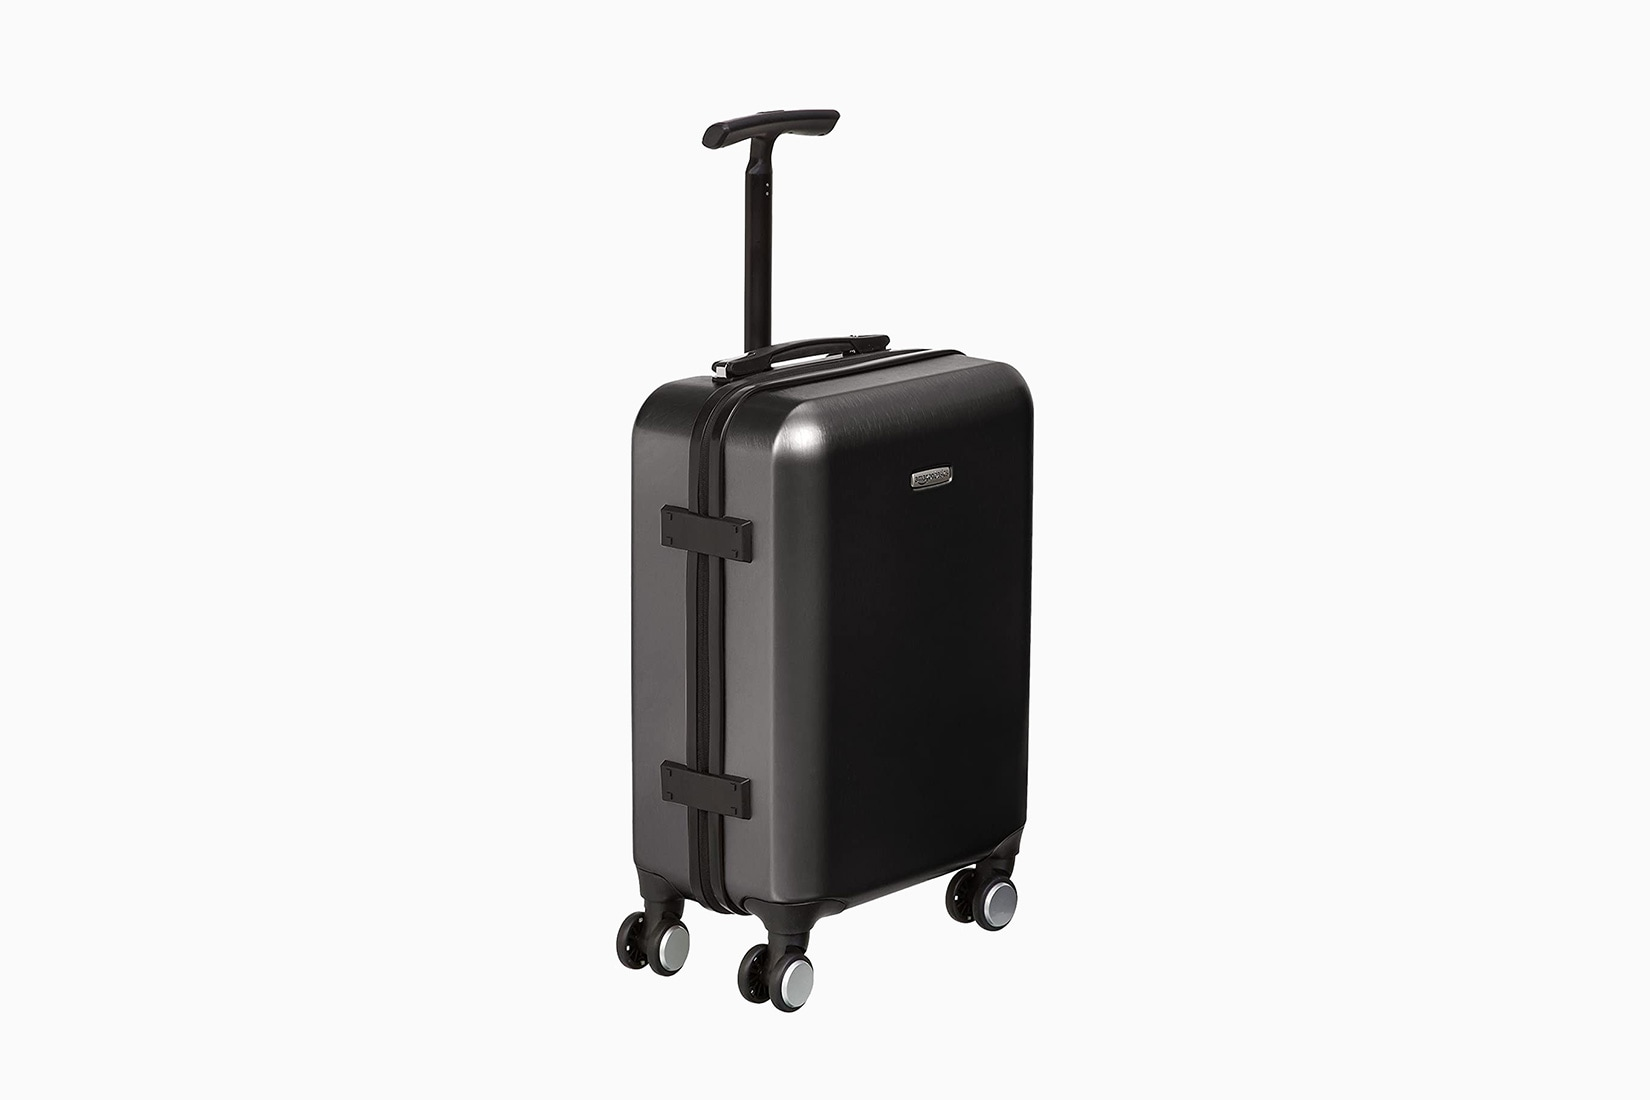 best carry-on luggage travel affordable AmazonBasics - Luxe Digital